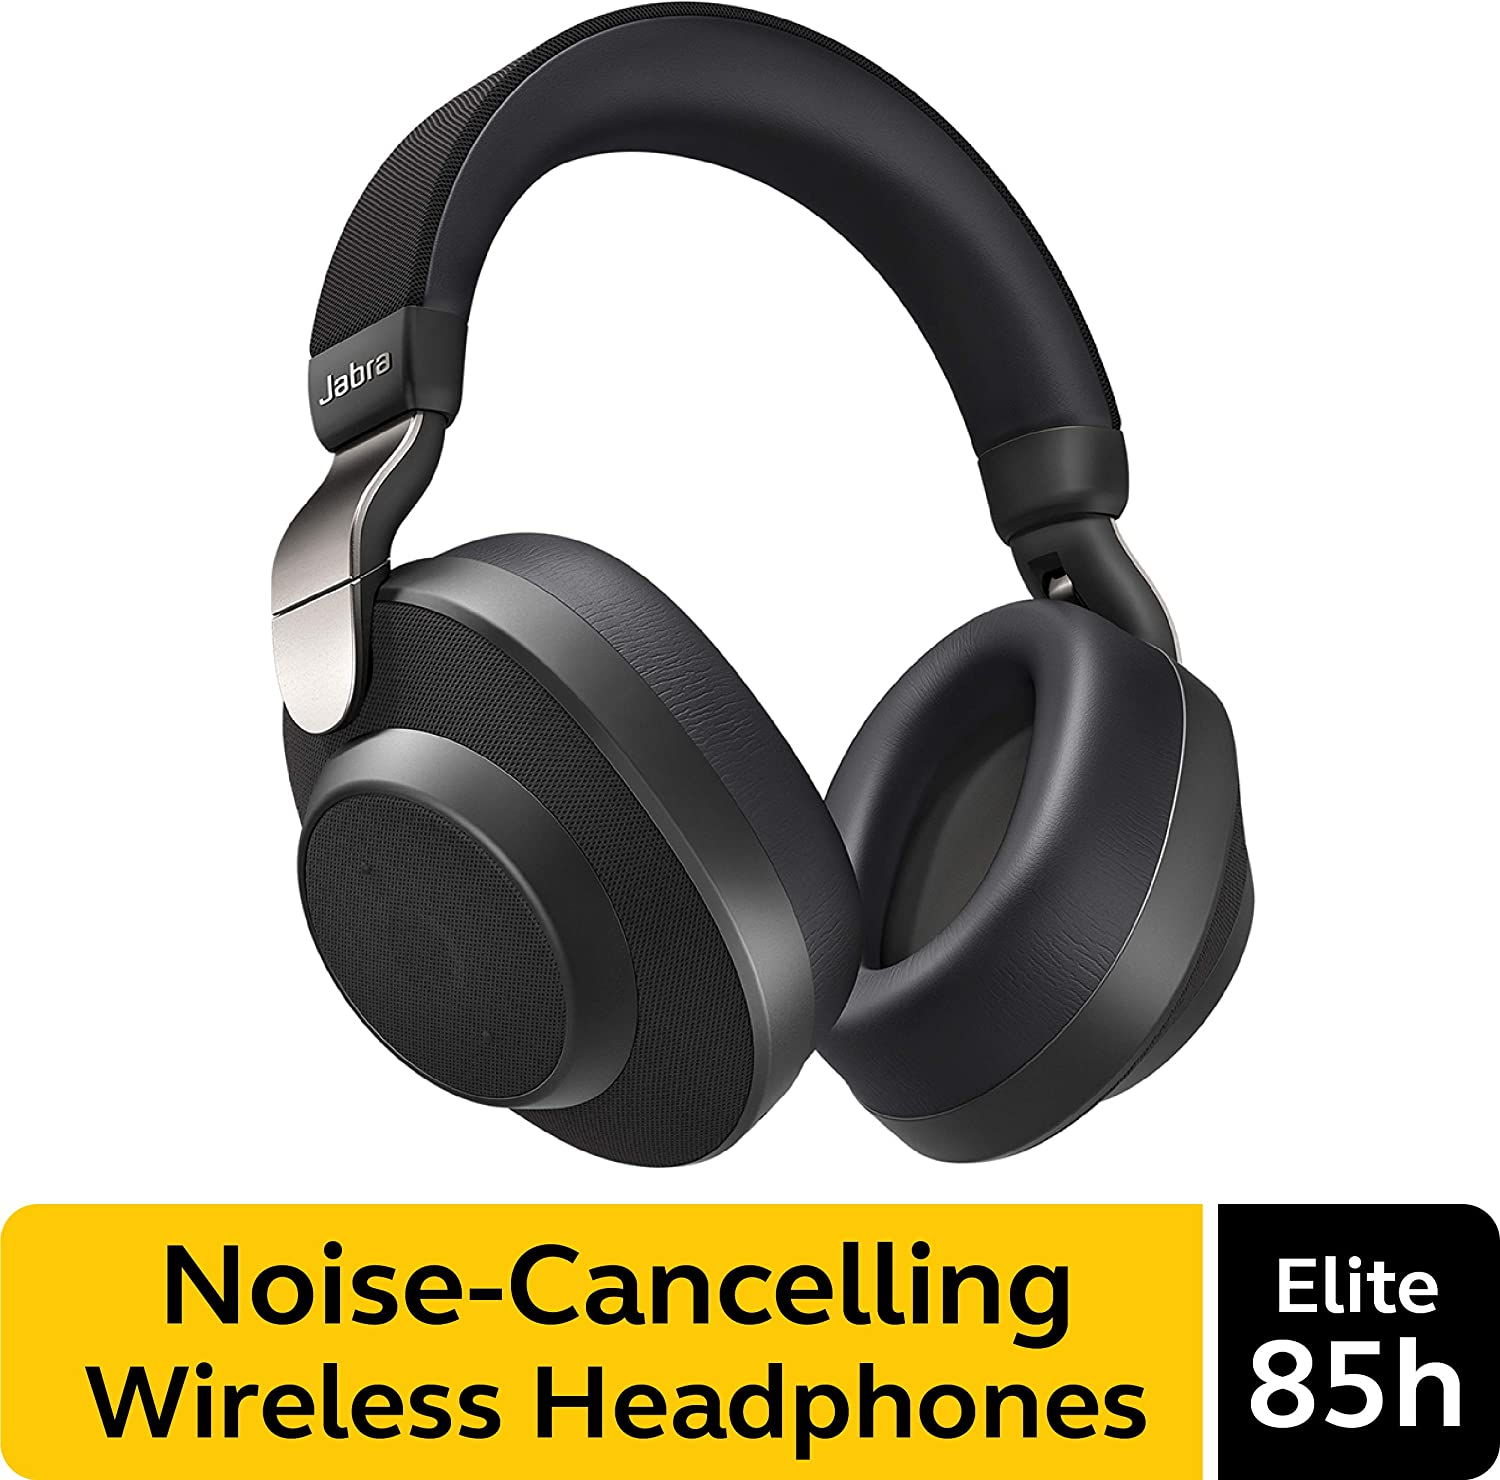 Amazon Com Jabra Elite 85h Wireless Noise Canceling Headphones Titanium Black Over Ear Bluetooth Headphones Compatible With Iphone Android Built In Microphone Long Battery Life Rain Water Resistant